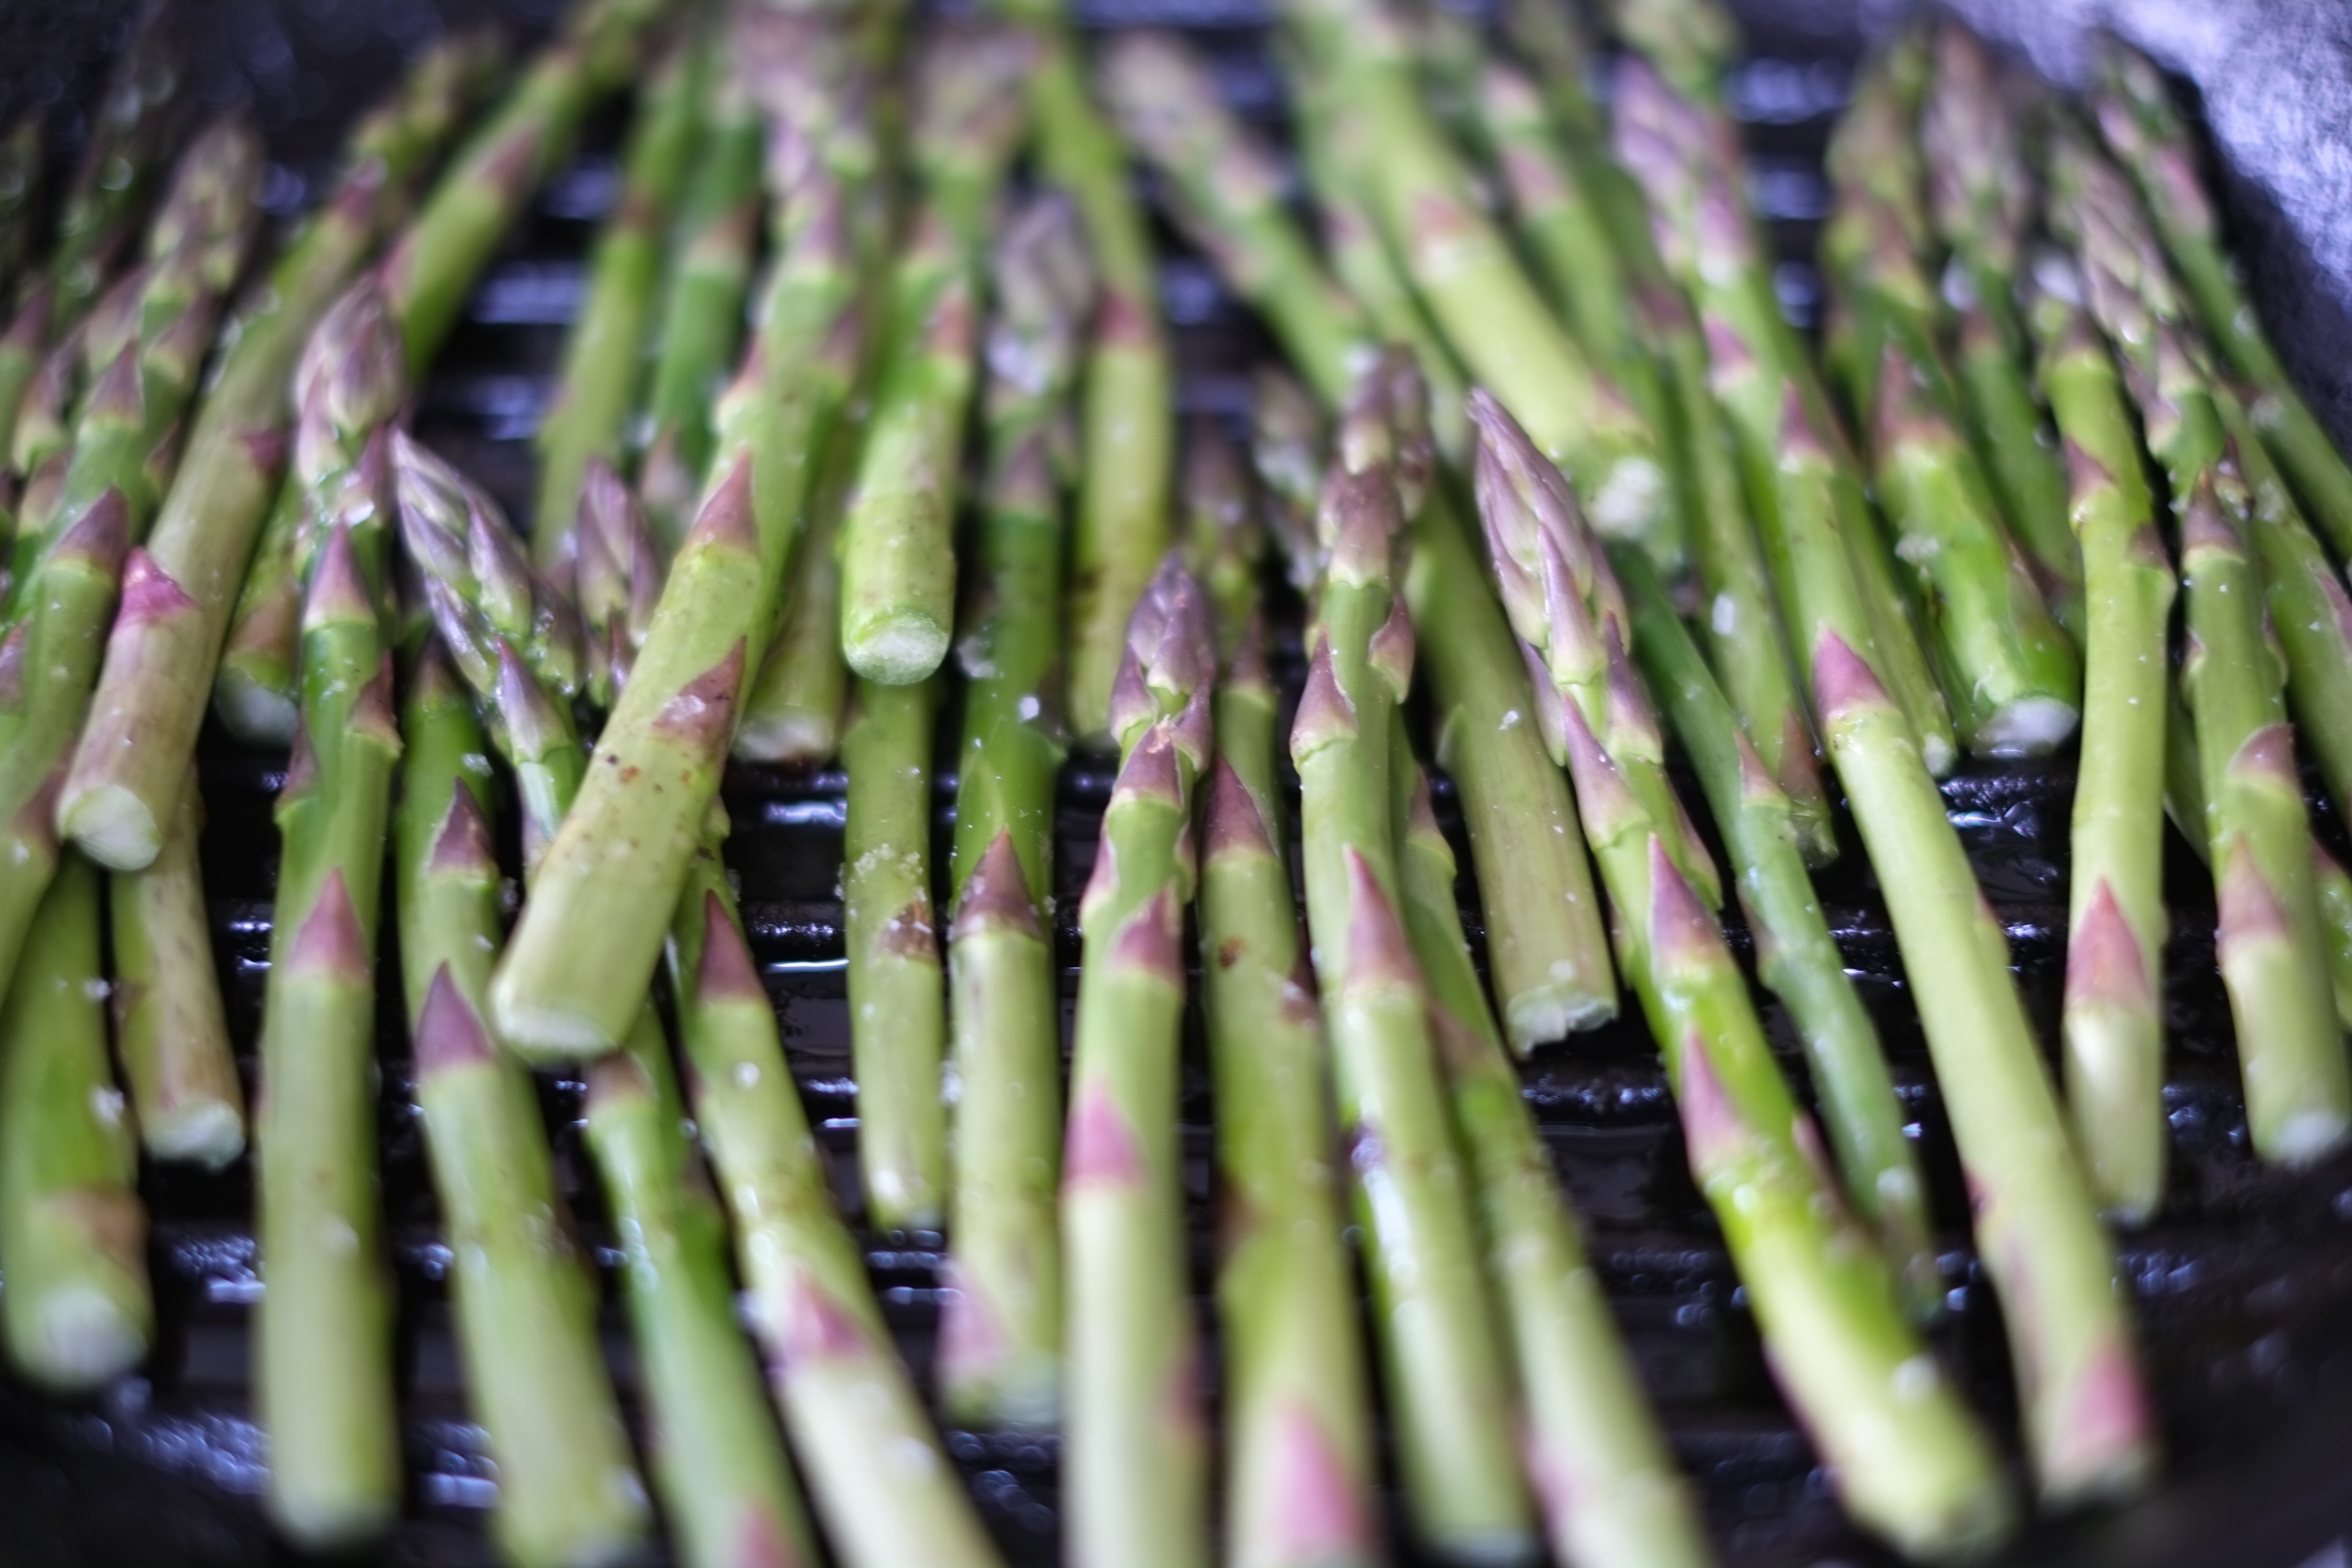 Asparagus: During April, asparagus will be nice and thick with less white to trim off the bottom.